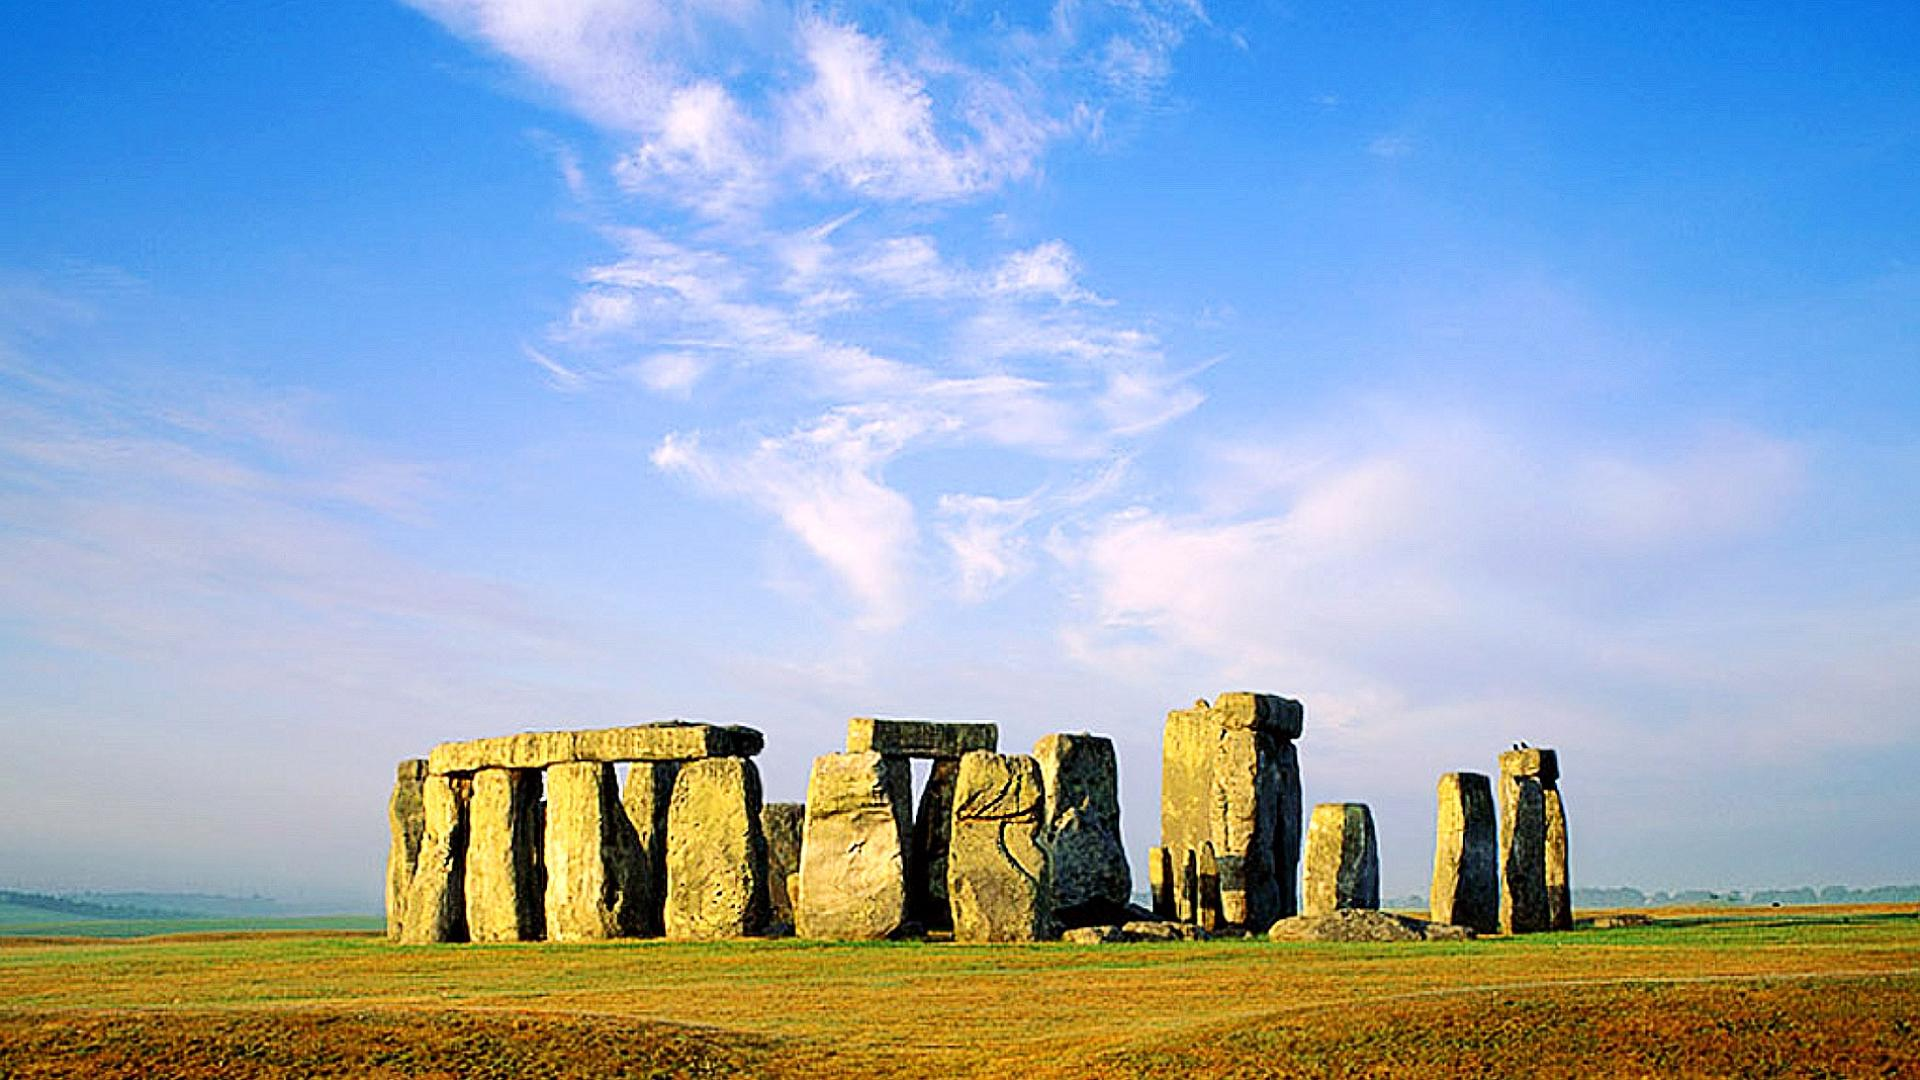 Stonehenge Monument England Wallpaper HD